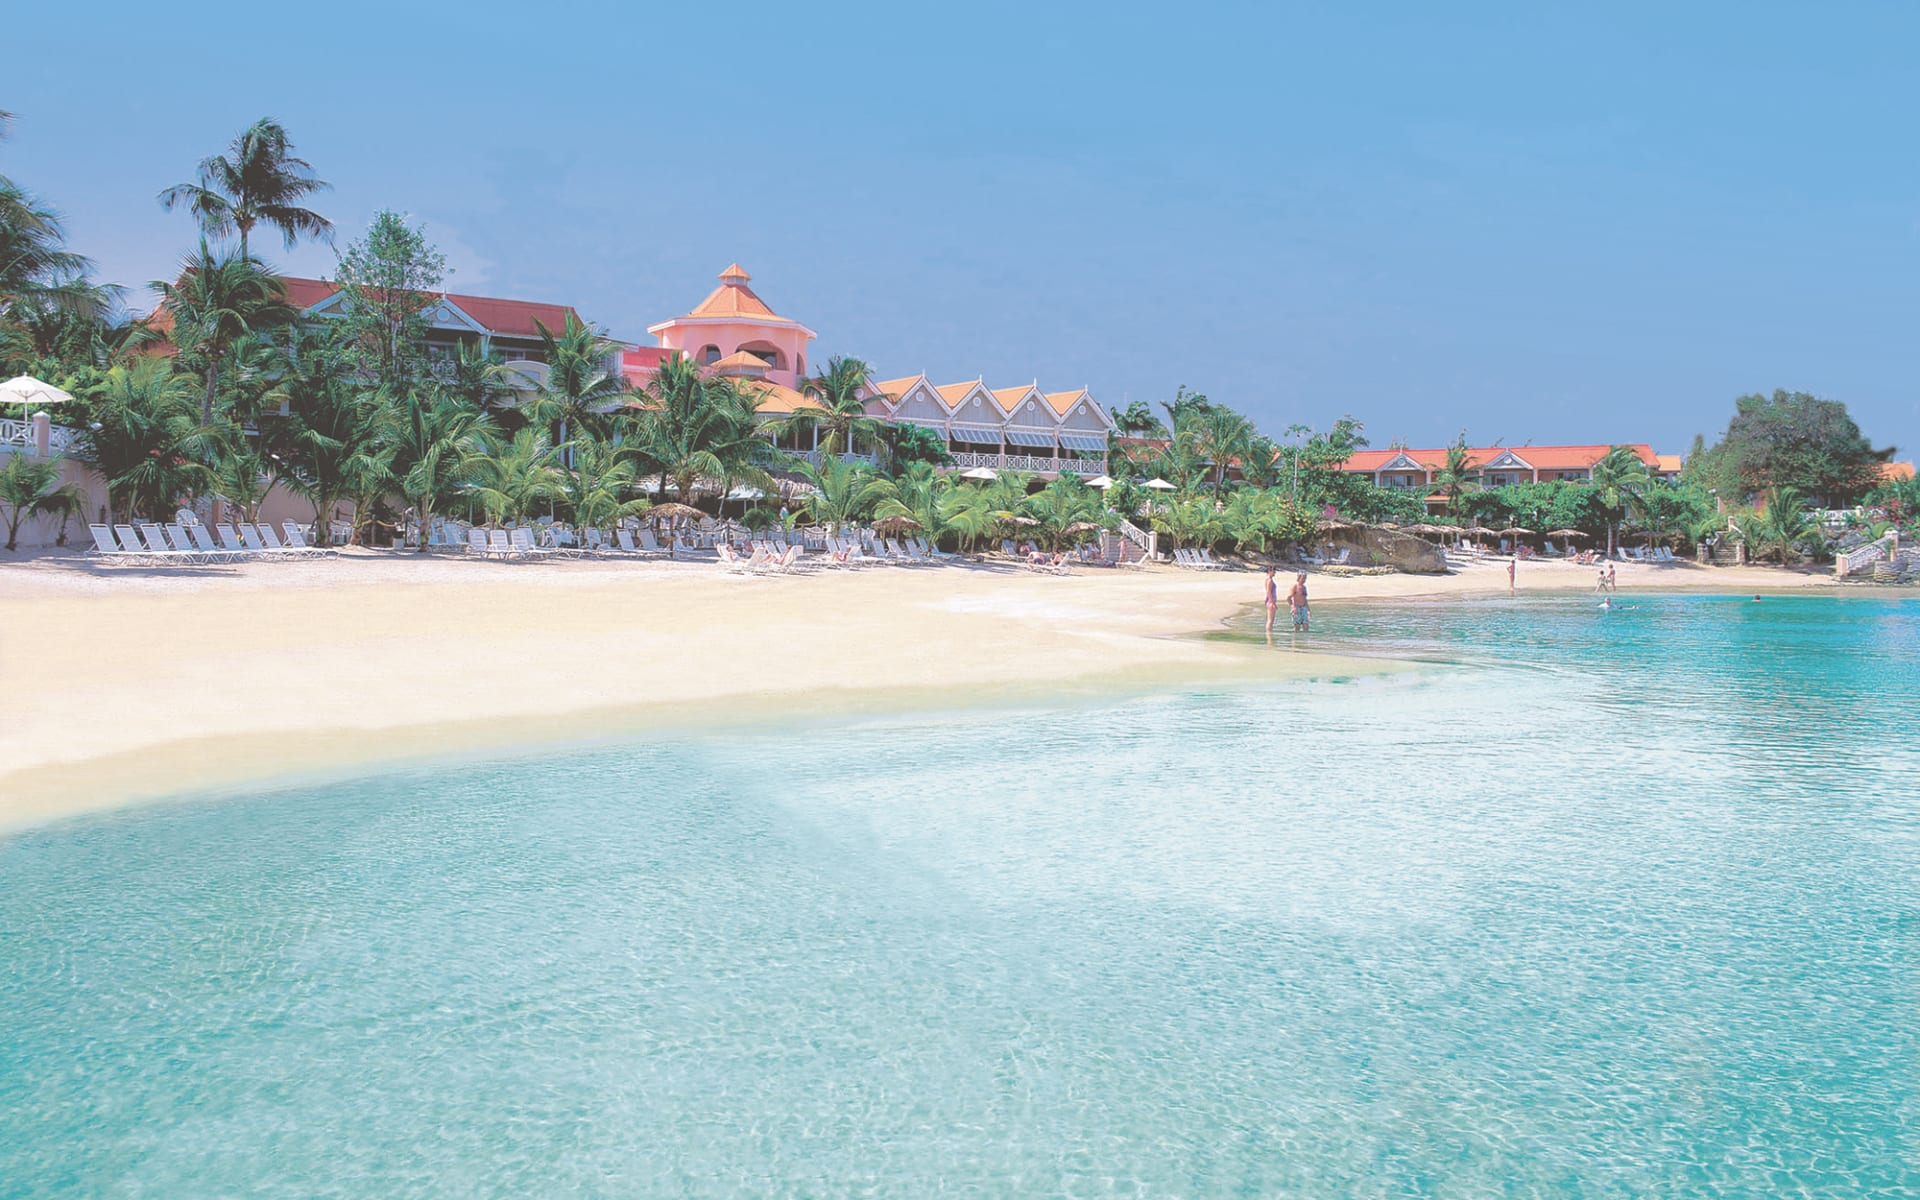 Coco Reef Resort in Coconut Bay: natur coco reef resort strand meer